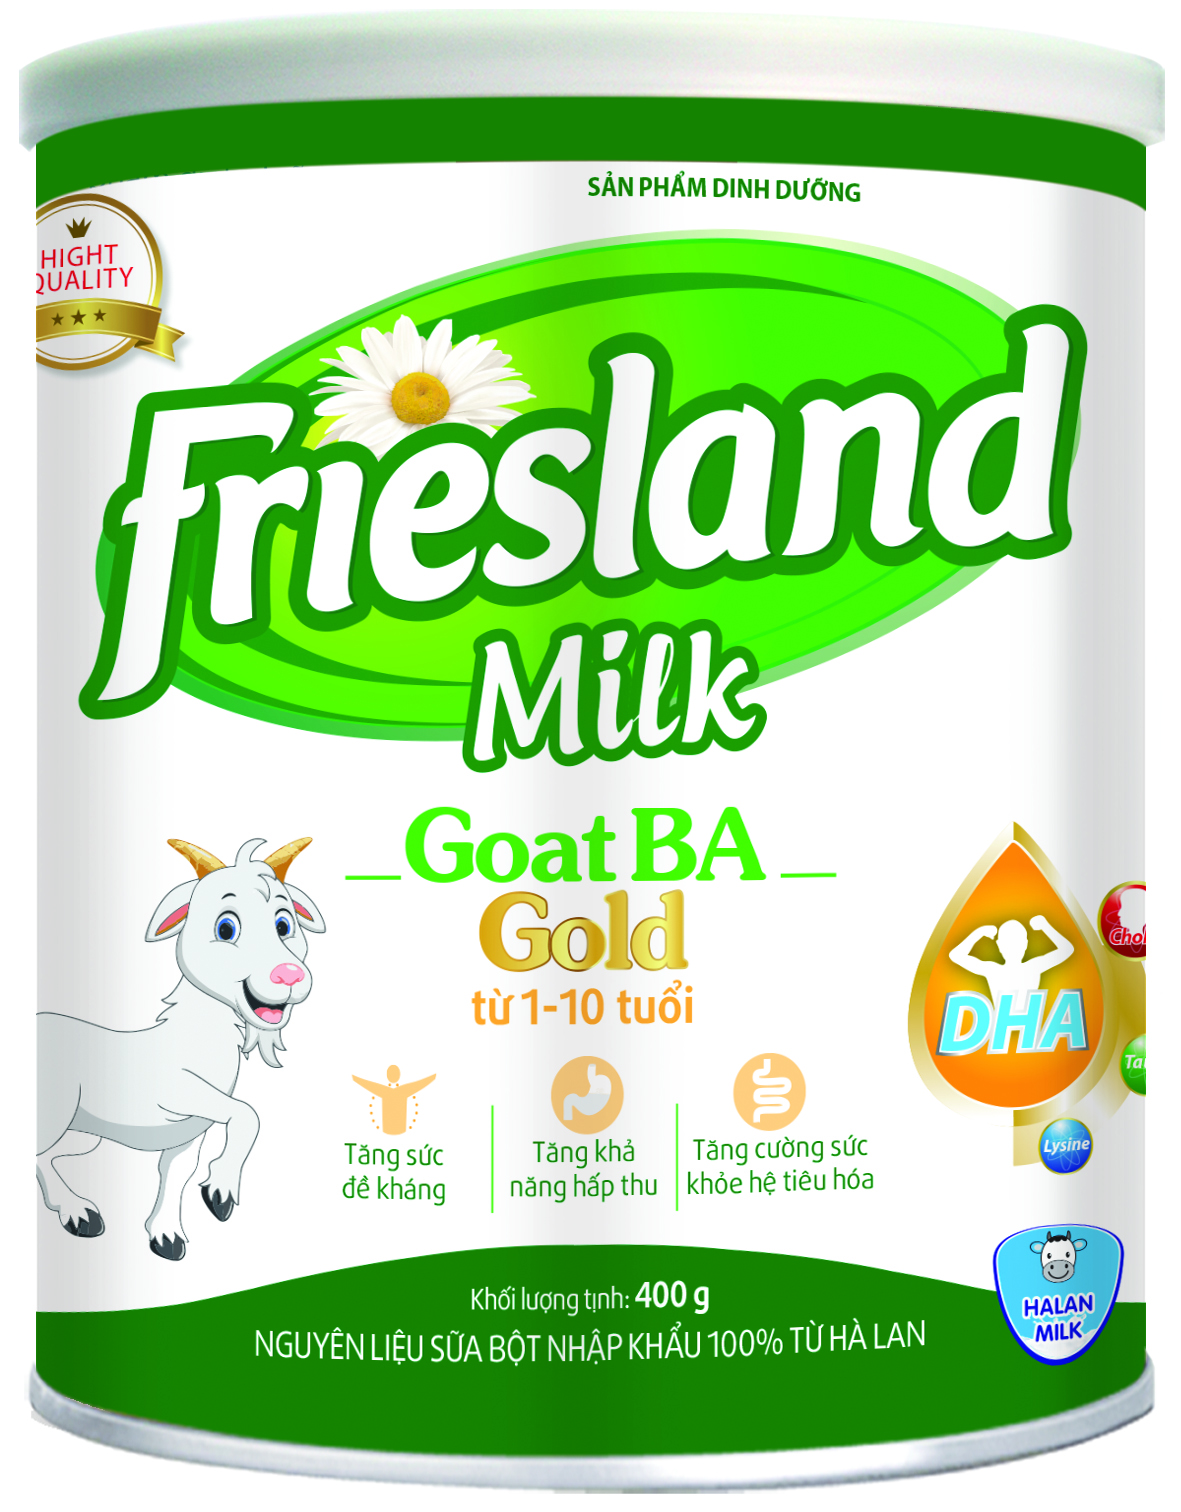 FRIESLAND MILK GOAT BA GOLD 400g